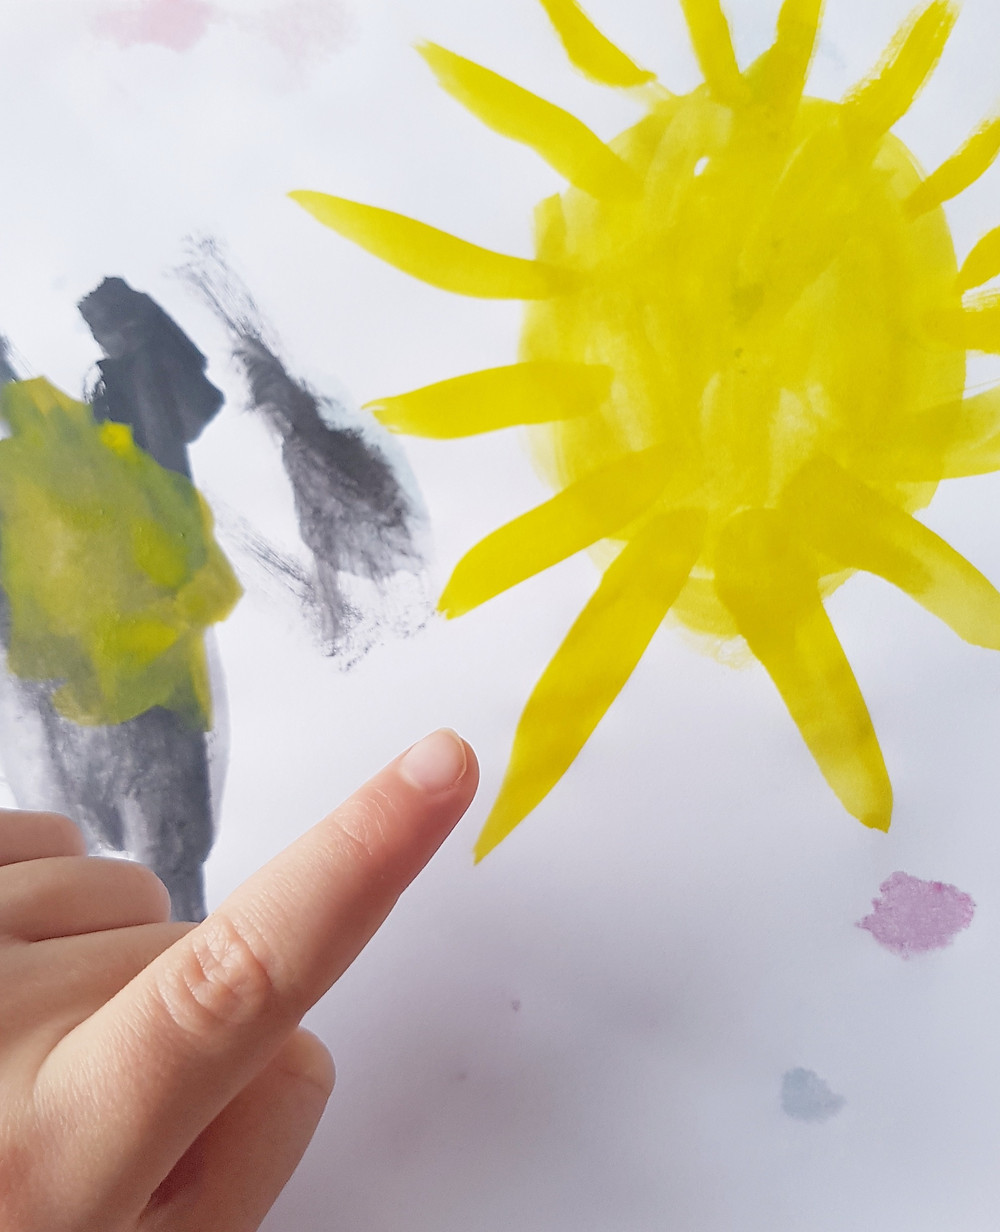 Child pointing at painting of sun